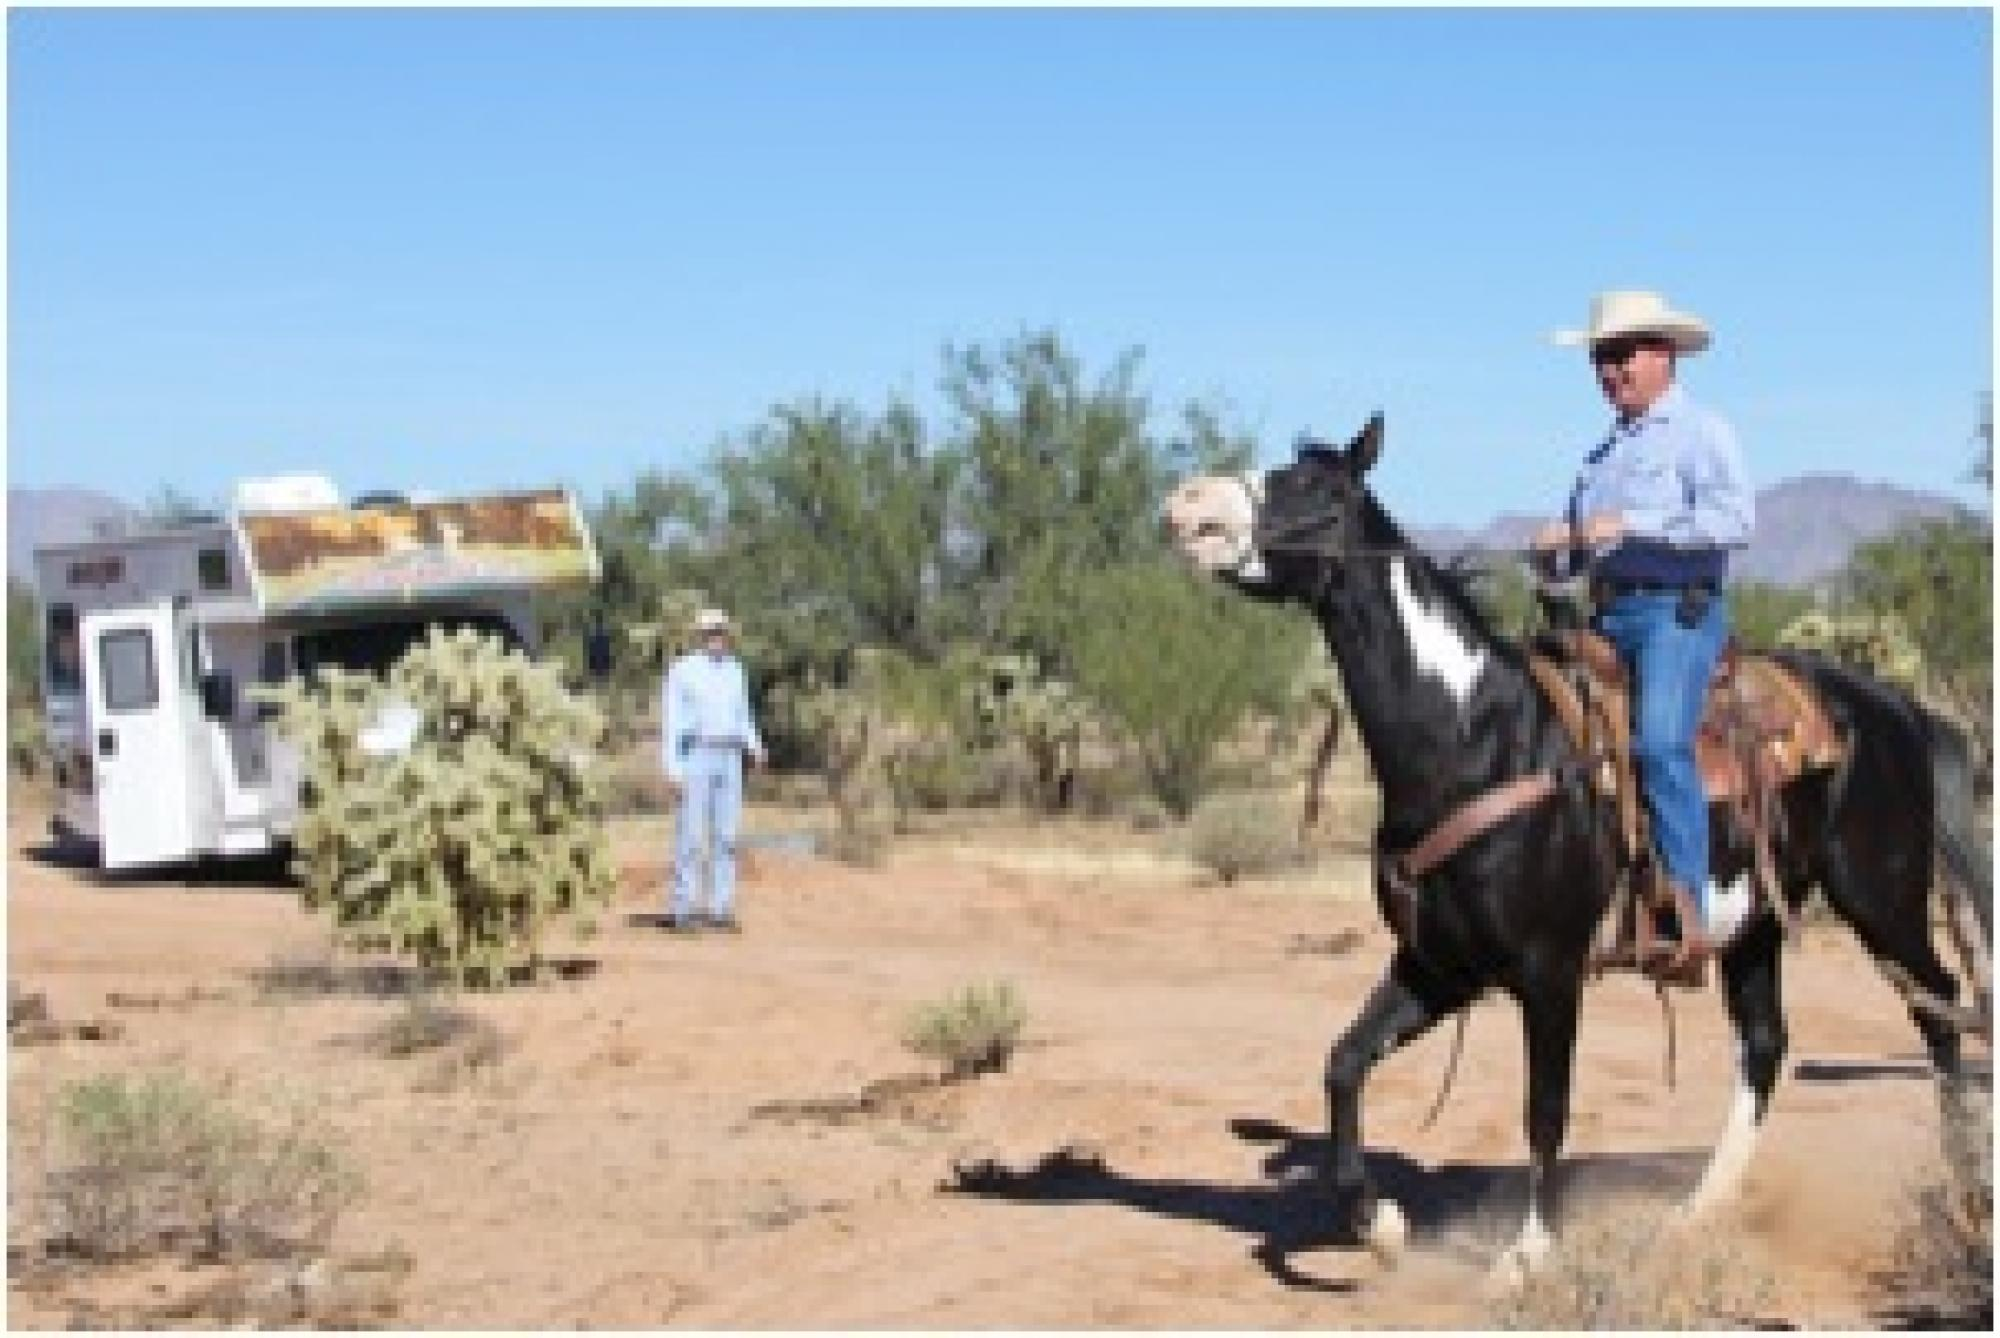 At the UA-Zonge engineering test site in the Sonoran Desert near Tucson, Brad Cowan of Cowan Horse Adventures in Southwest Tucson takes his 1,300-pound mare at a trot across the buried fiber-optic cable, which is connected to a Helios detection unit in th